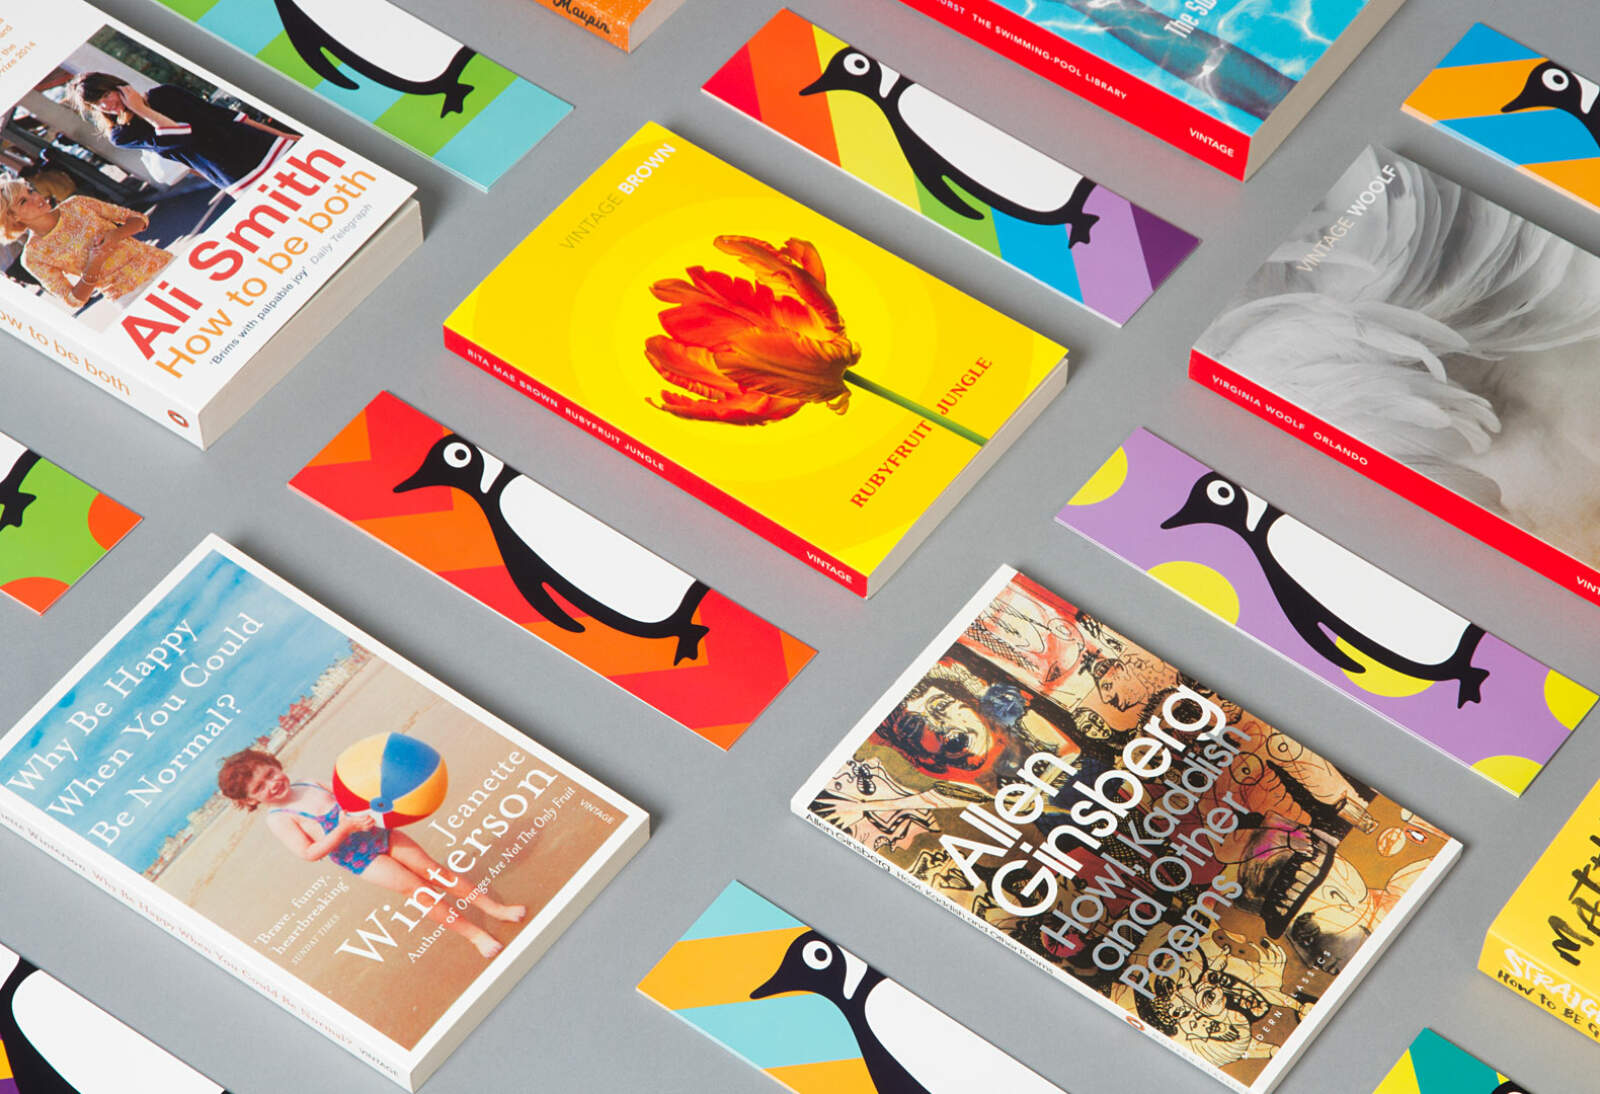 Bookmarks using the brand for Penguin at the Pride festival.